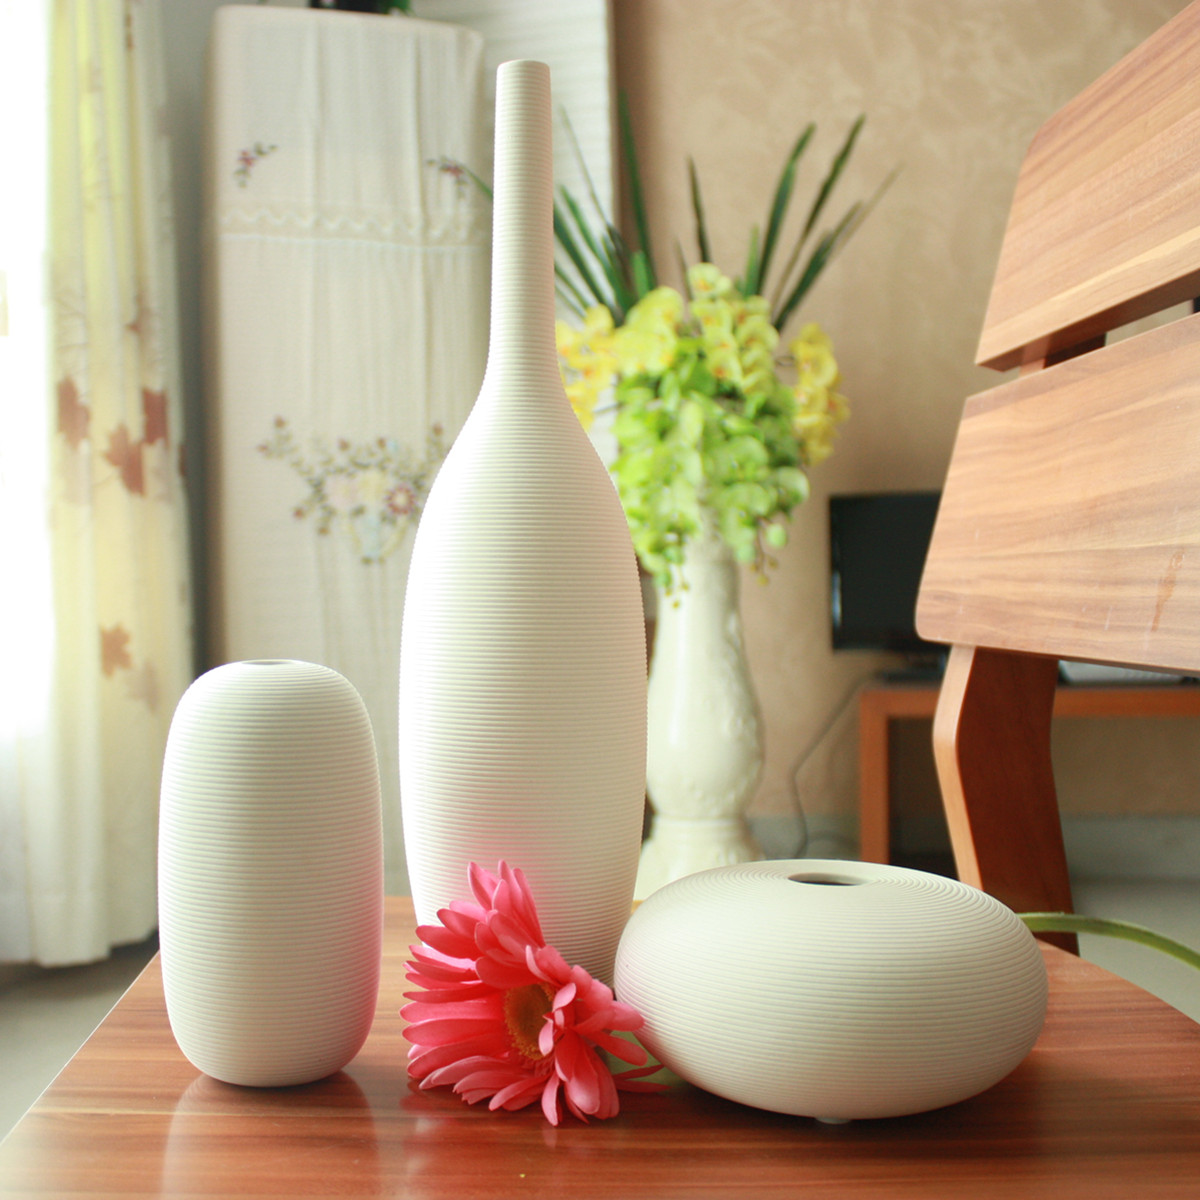 Living Room Vase aliexpress : buy fashion ceramic vase 3pcslot white vase home